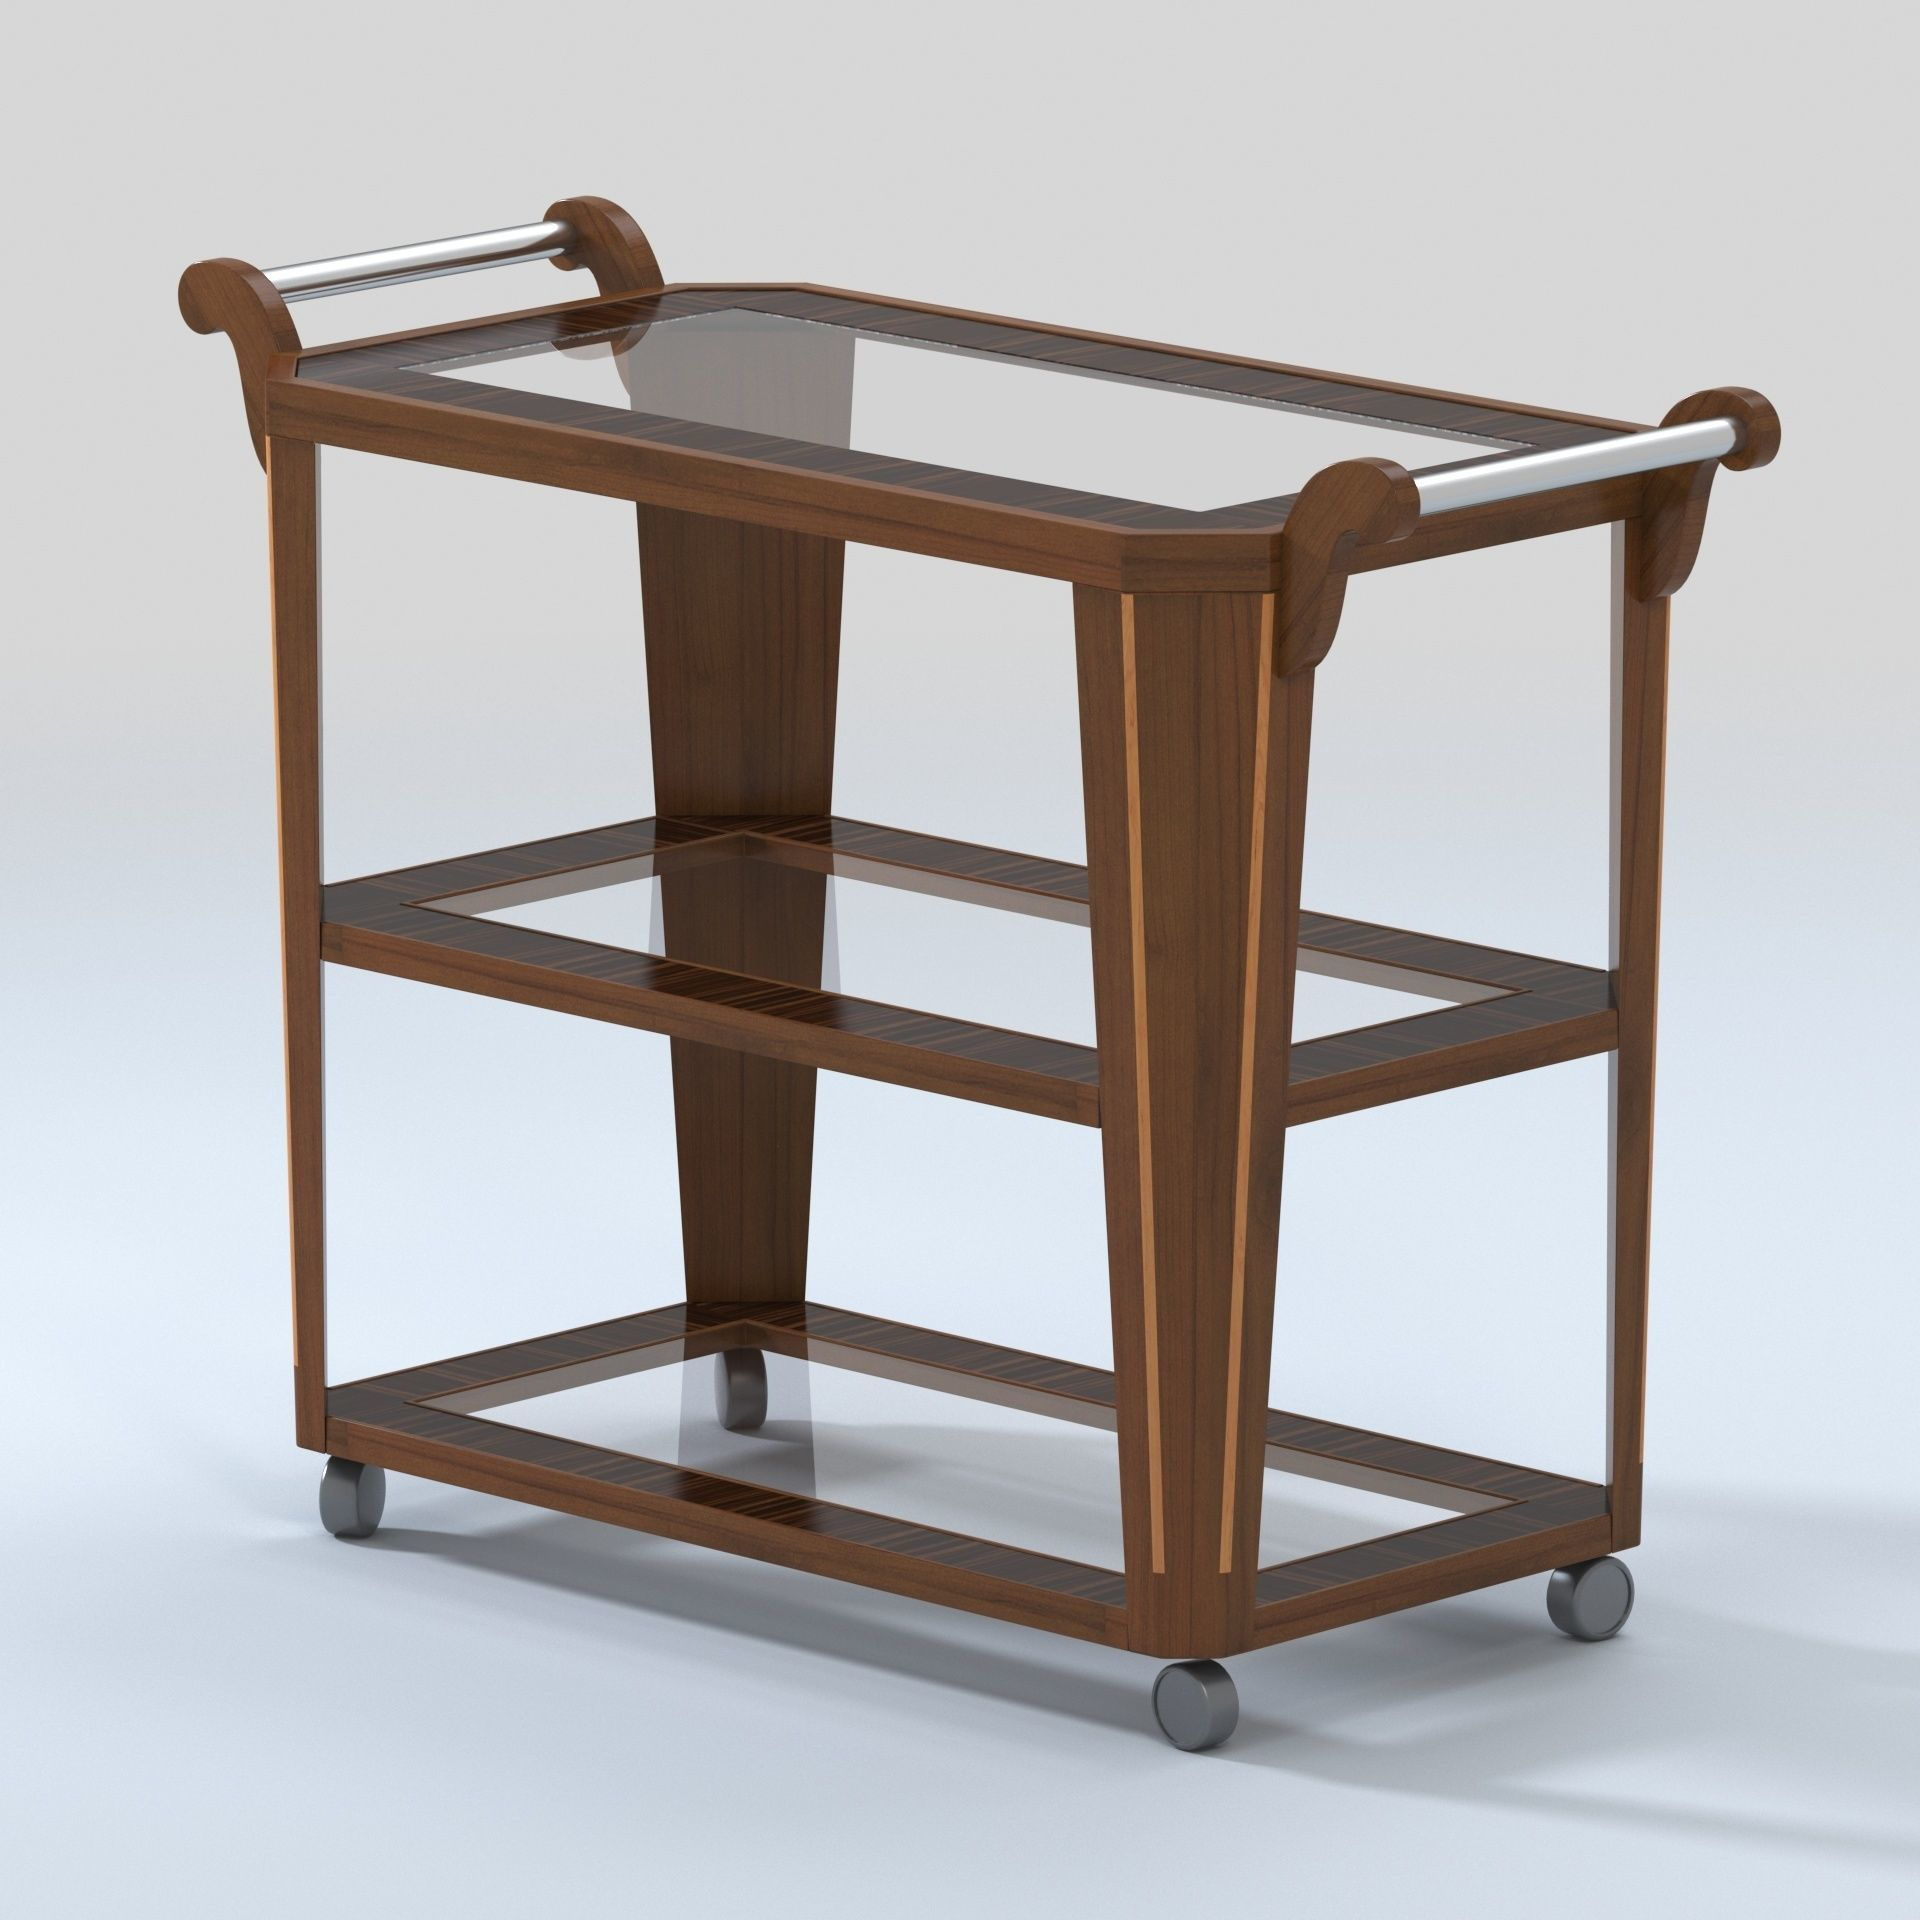 3d Model Vintage Bar Cart With Zebra Wood And Glass